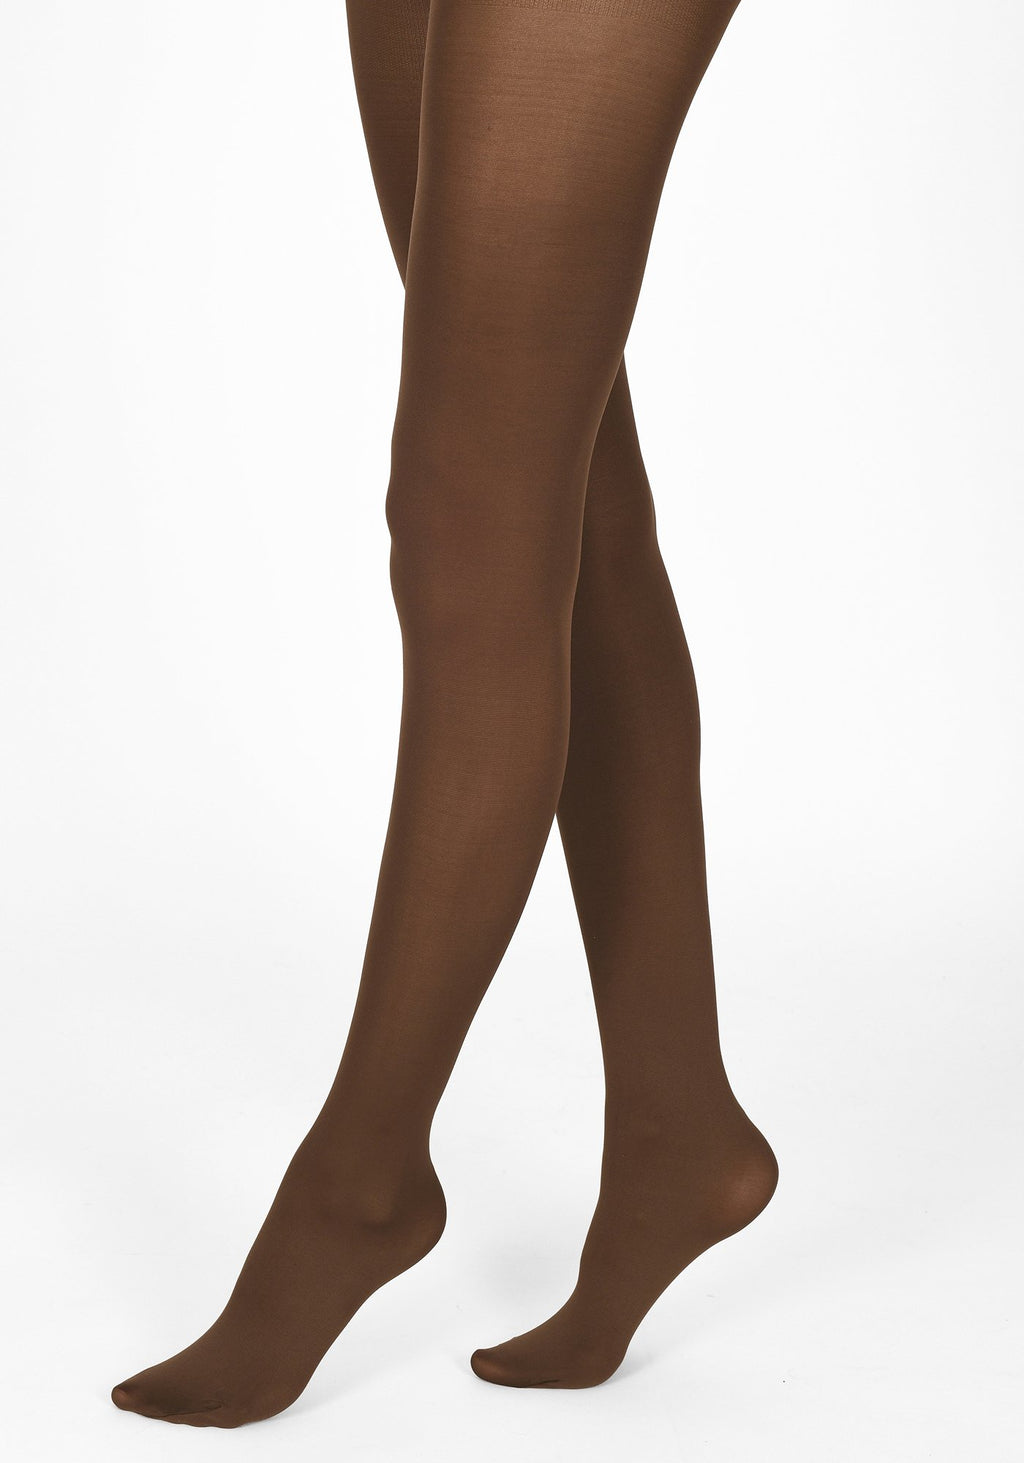 dark brown tights 60 denier 1